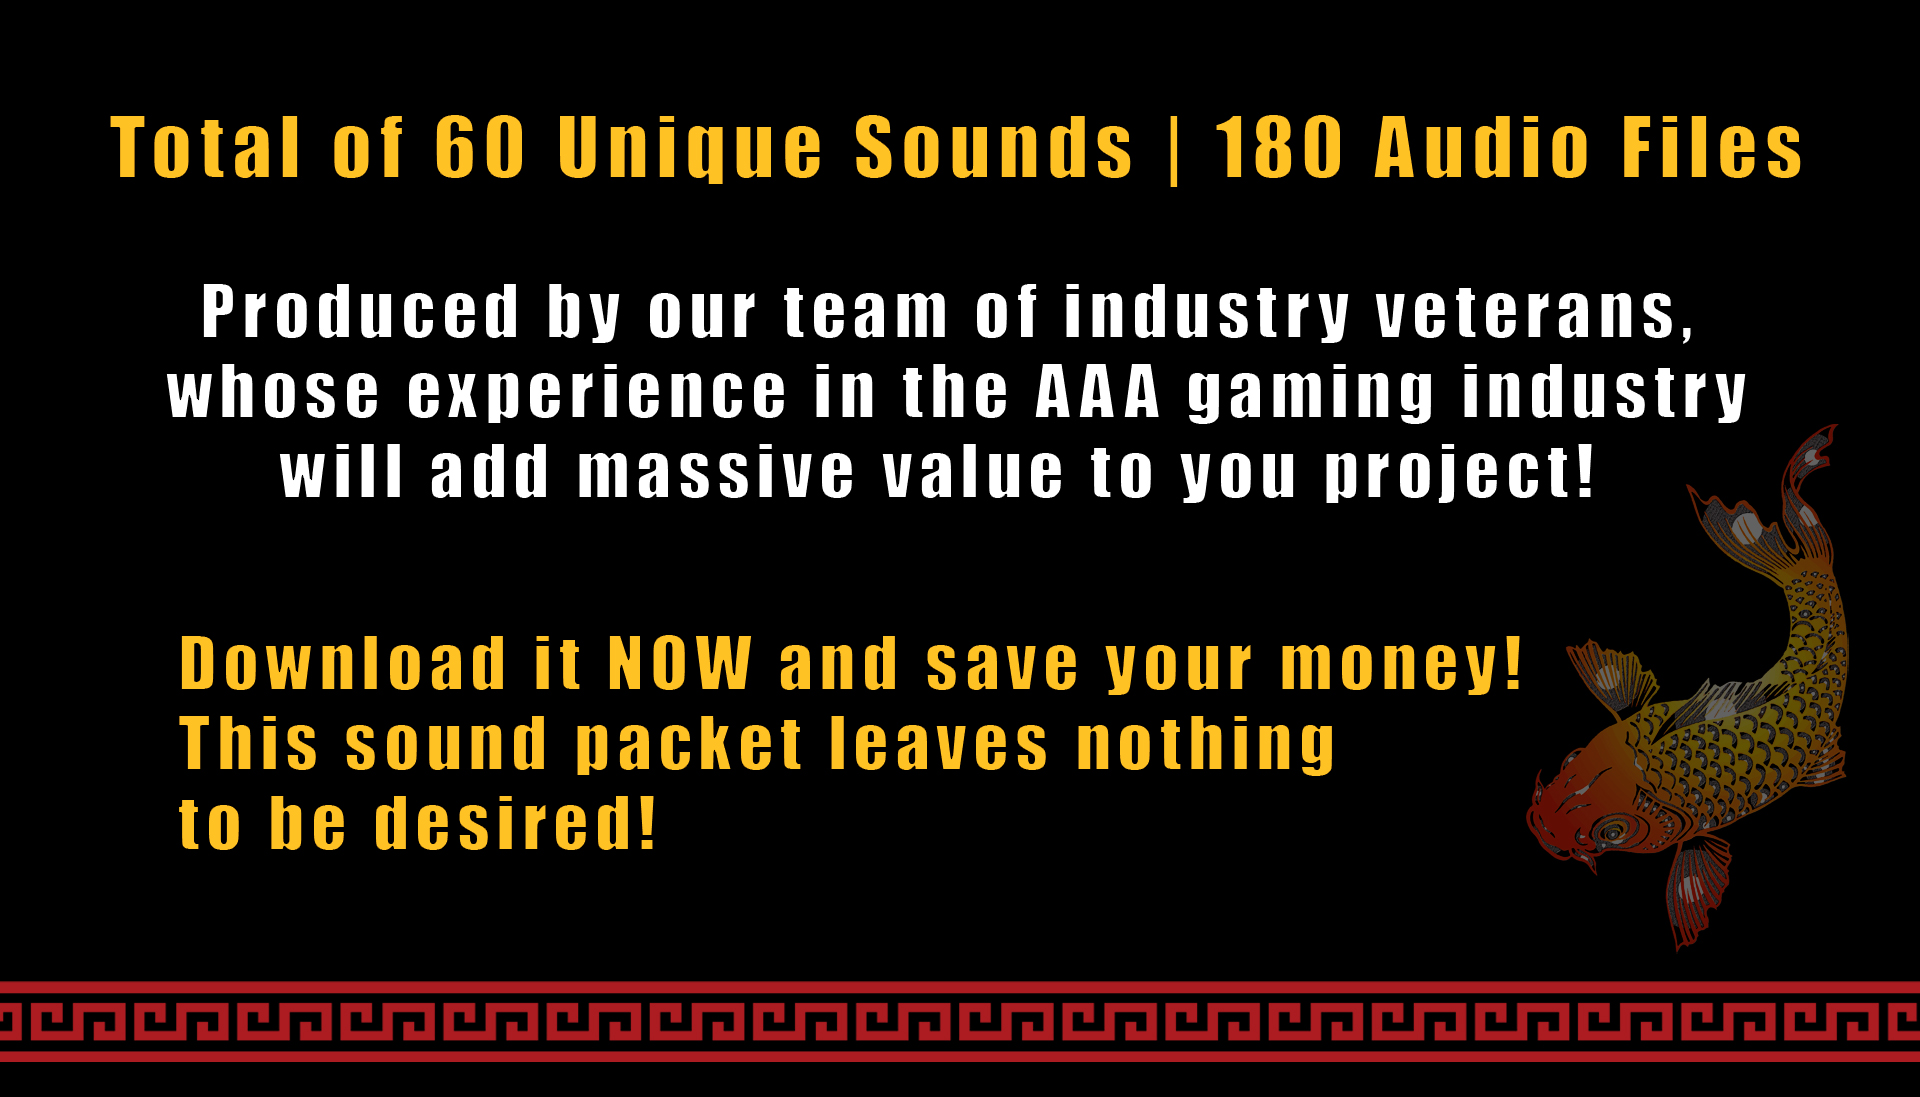 CHINA SLOT GAME SOUND PACK - Royalty Free Music and Sound Effects by  Fusehive com